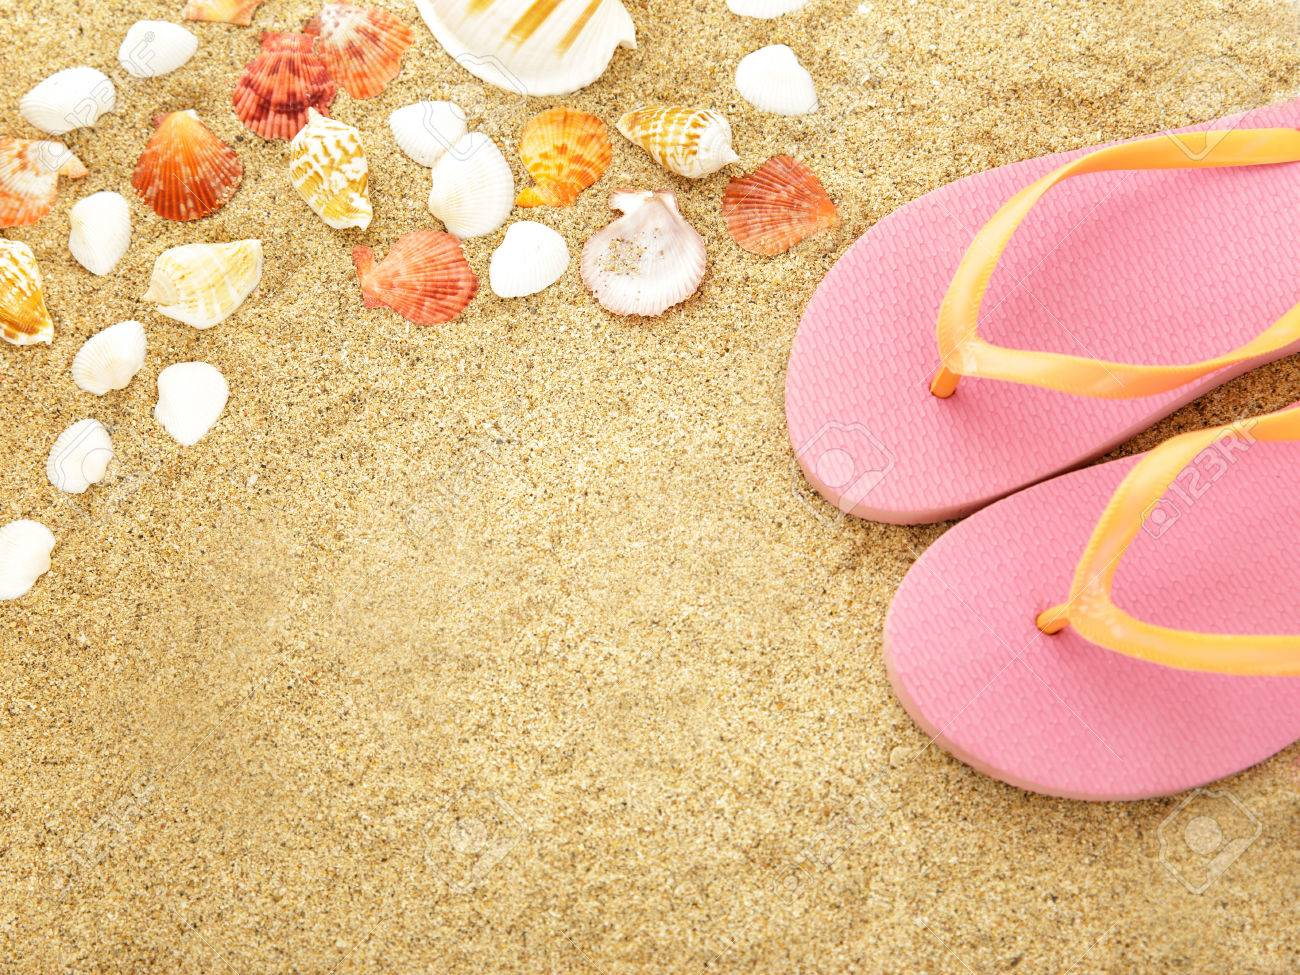 47b9c77060d0 Stock photo top view portrait of pink flip flops with sea shells on beach  sand jpg